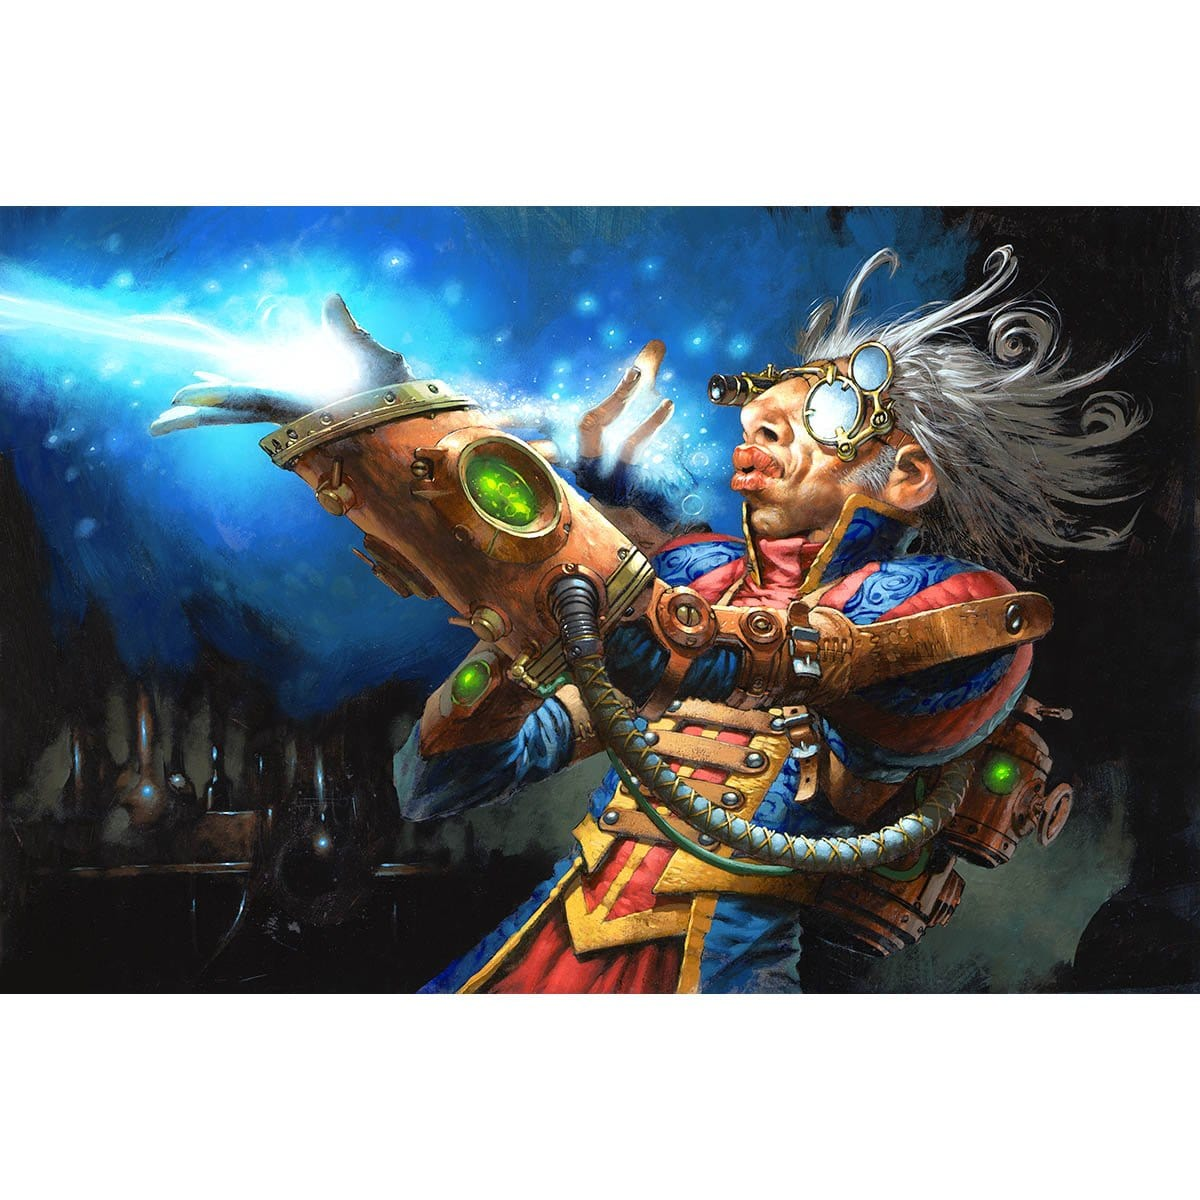 Izzet Guildmage Print - Print - Original Magic Art - Accessories for Magic the Gathering and other card games